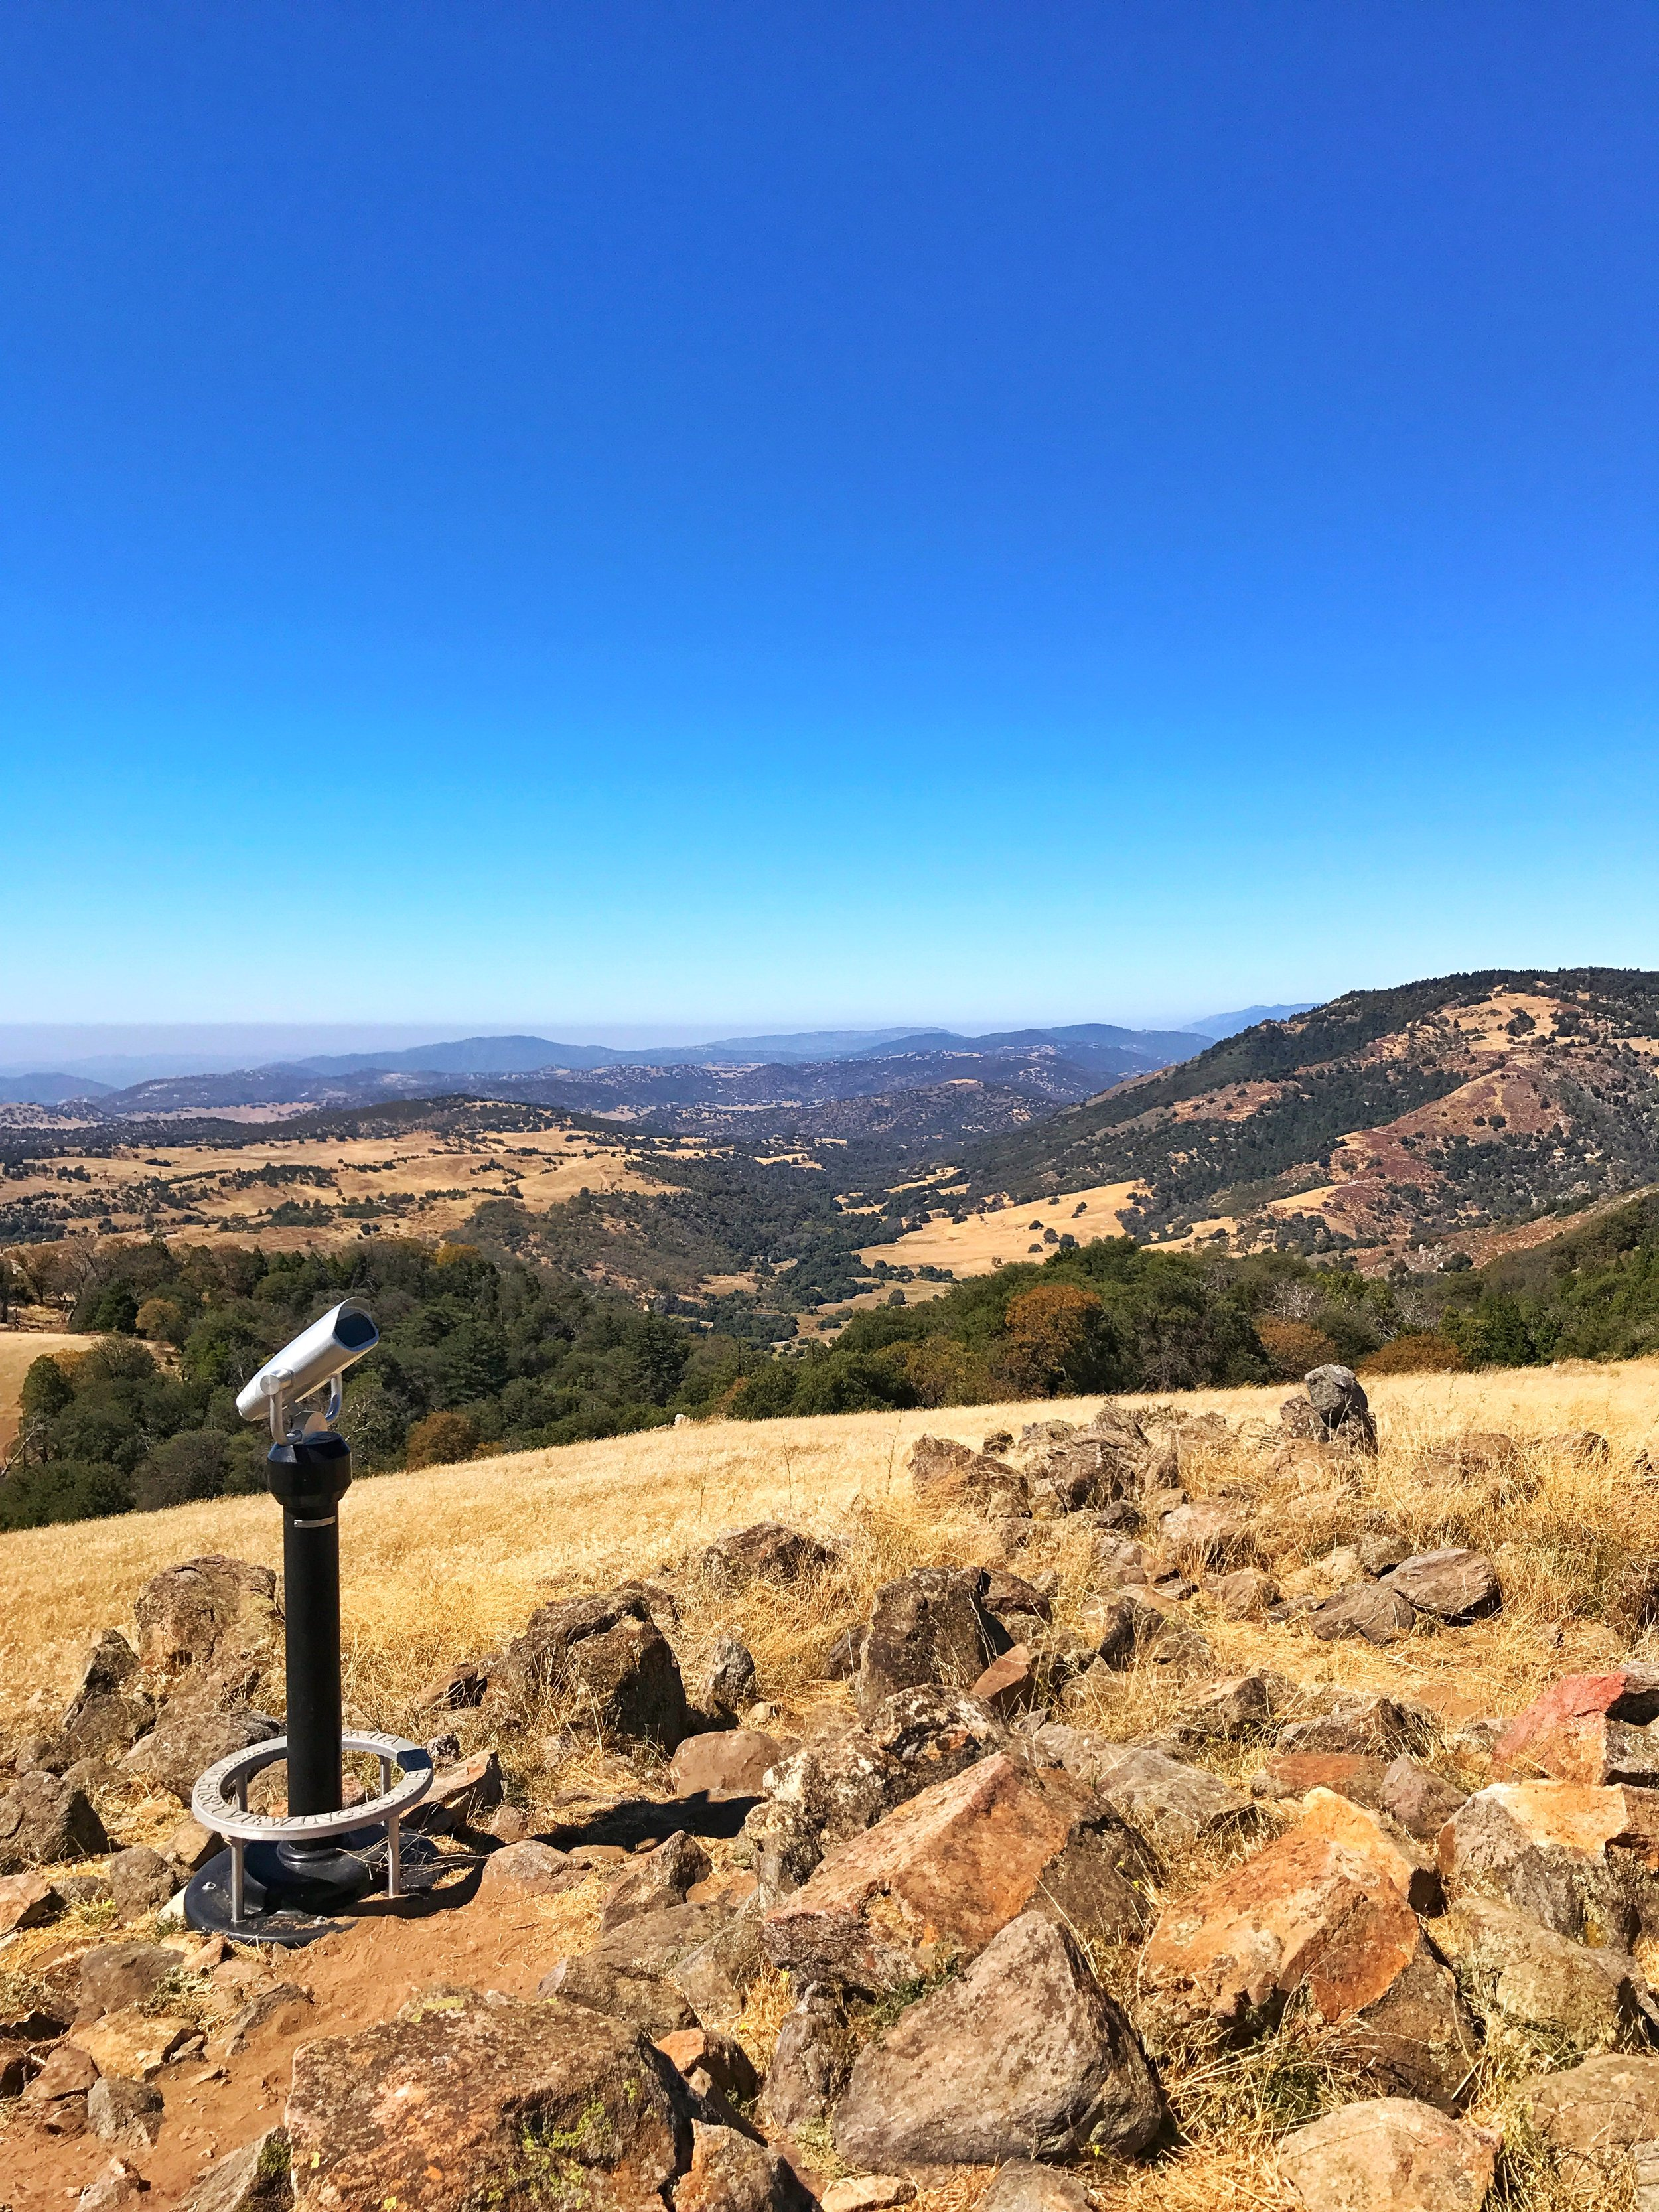 Volcan Mountain was one of two spots selected as a spot for the Hale Telescope. While the telescope ended up on Mount Palomar, Volcan Mountain still has amazing views.